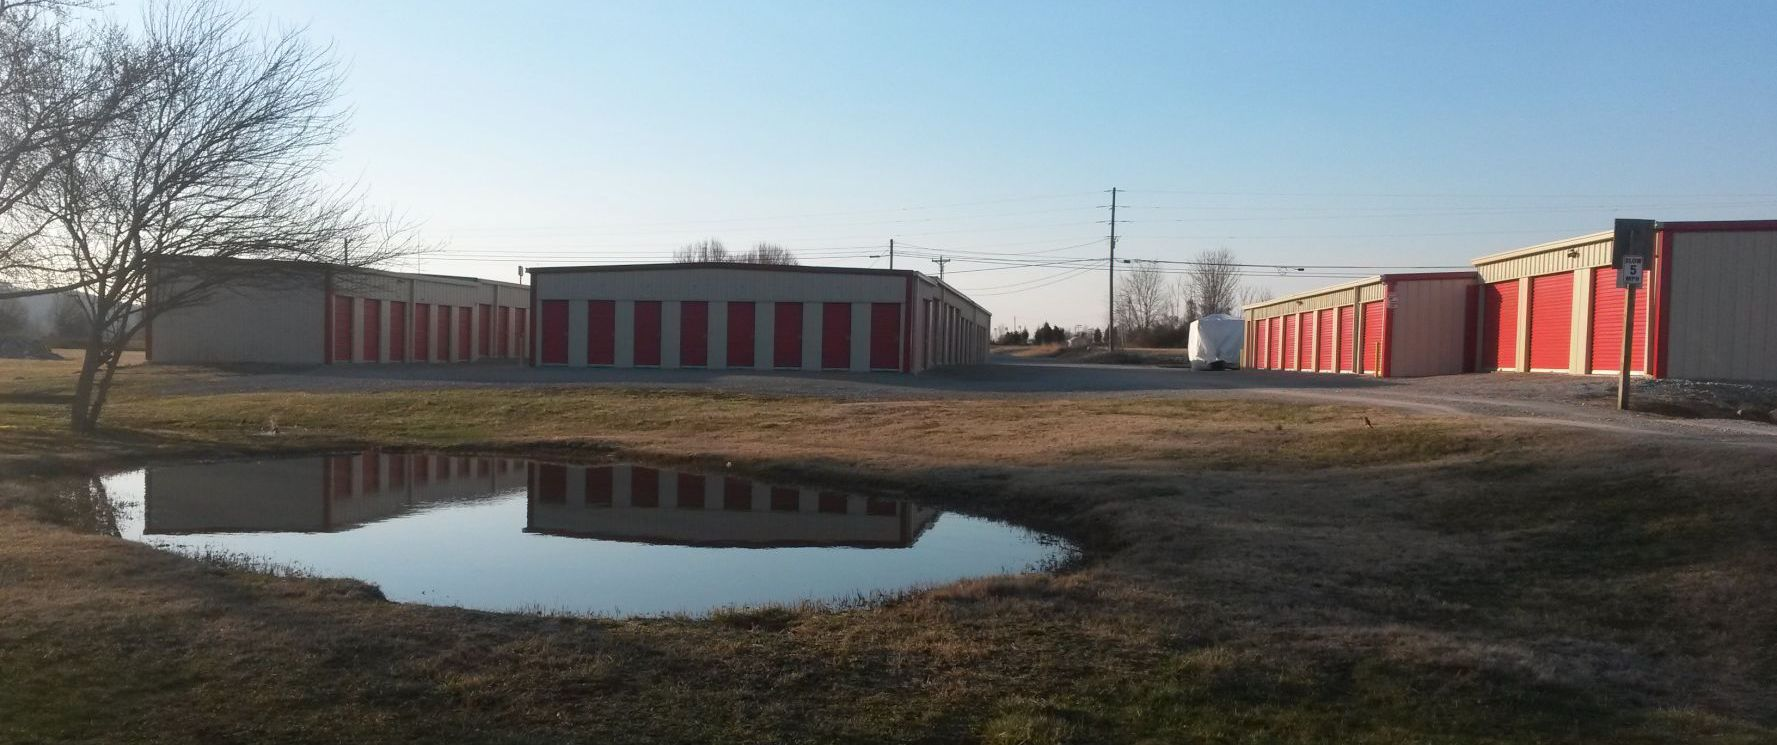 Self-storage facility in Somerset, KY